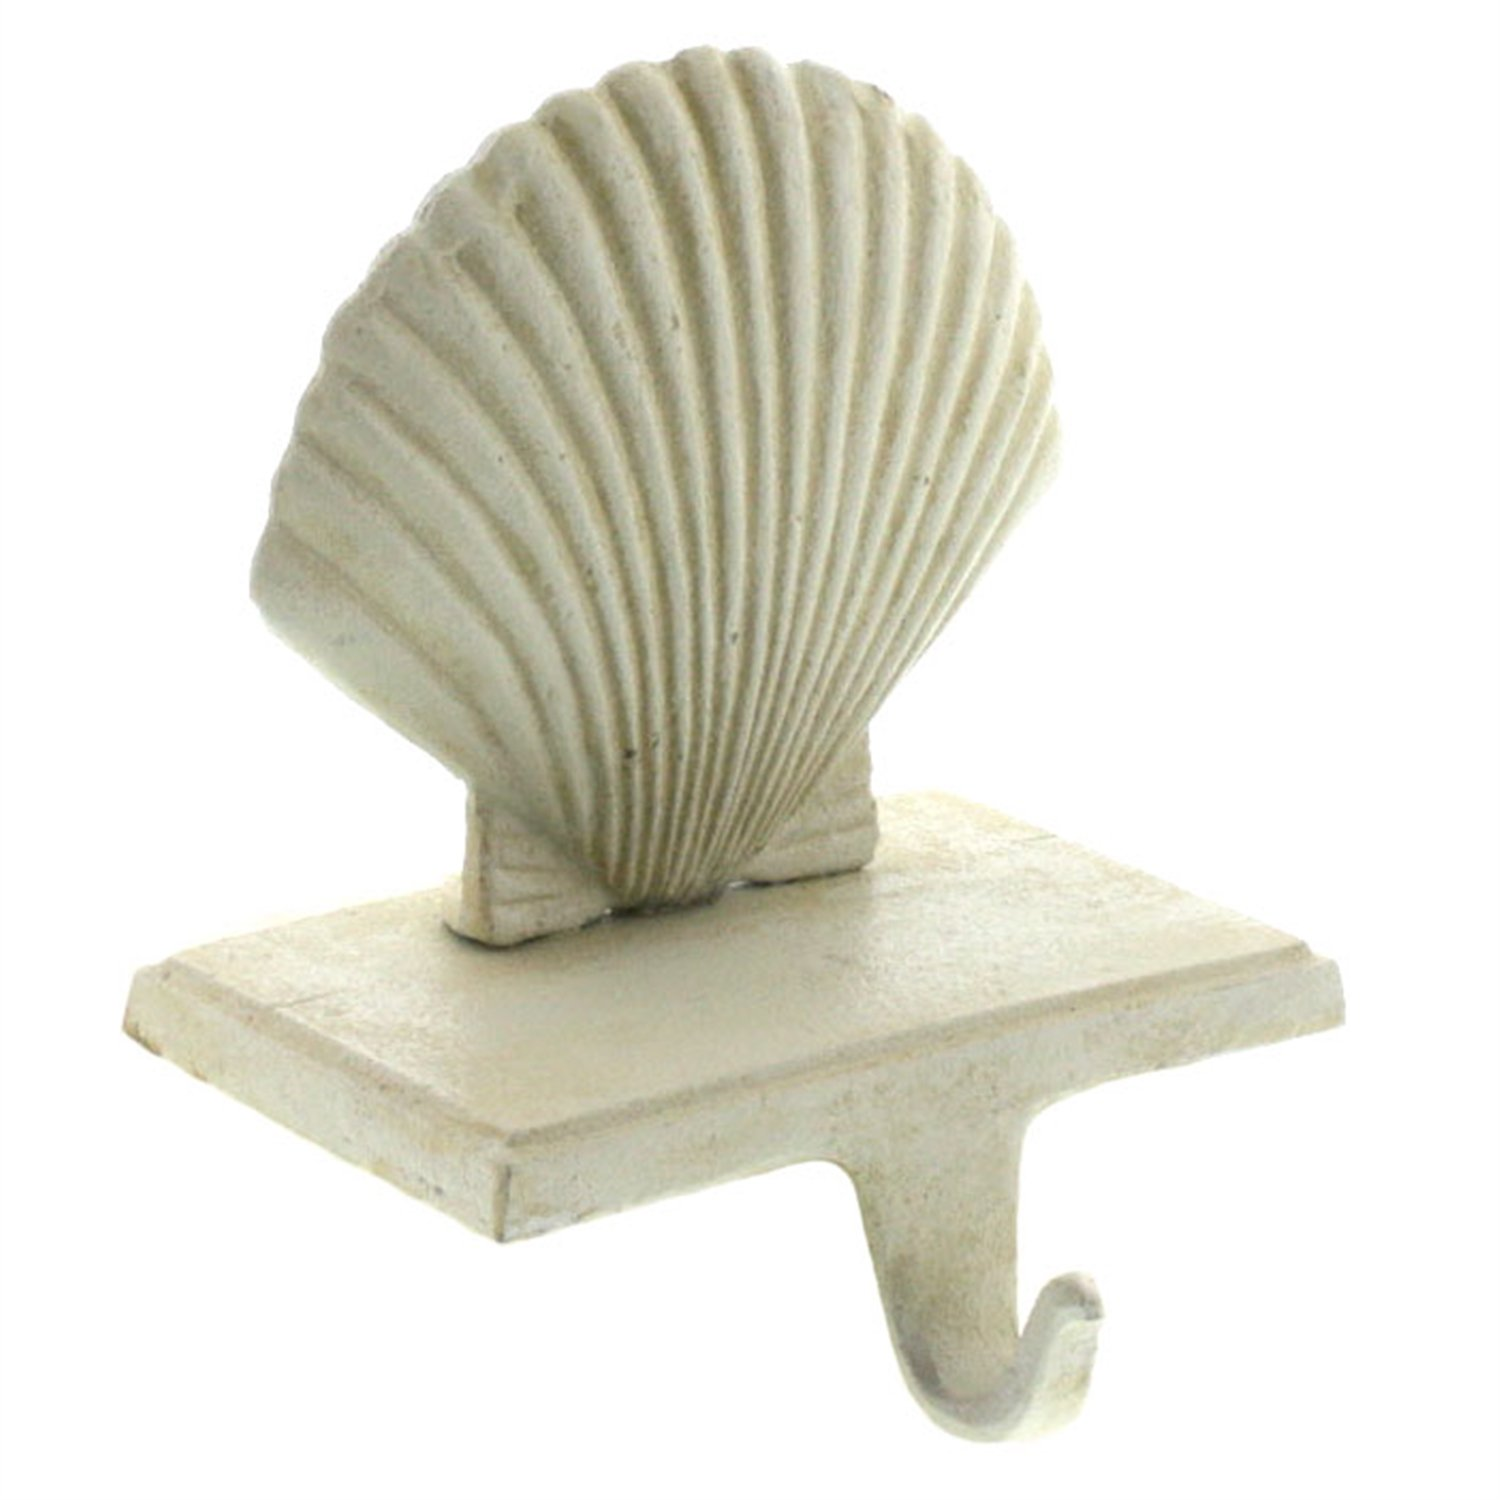 HomArt Scallop Stocking Holder - Cast Iron (Antique White) (Set of 12)